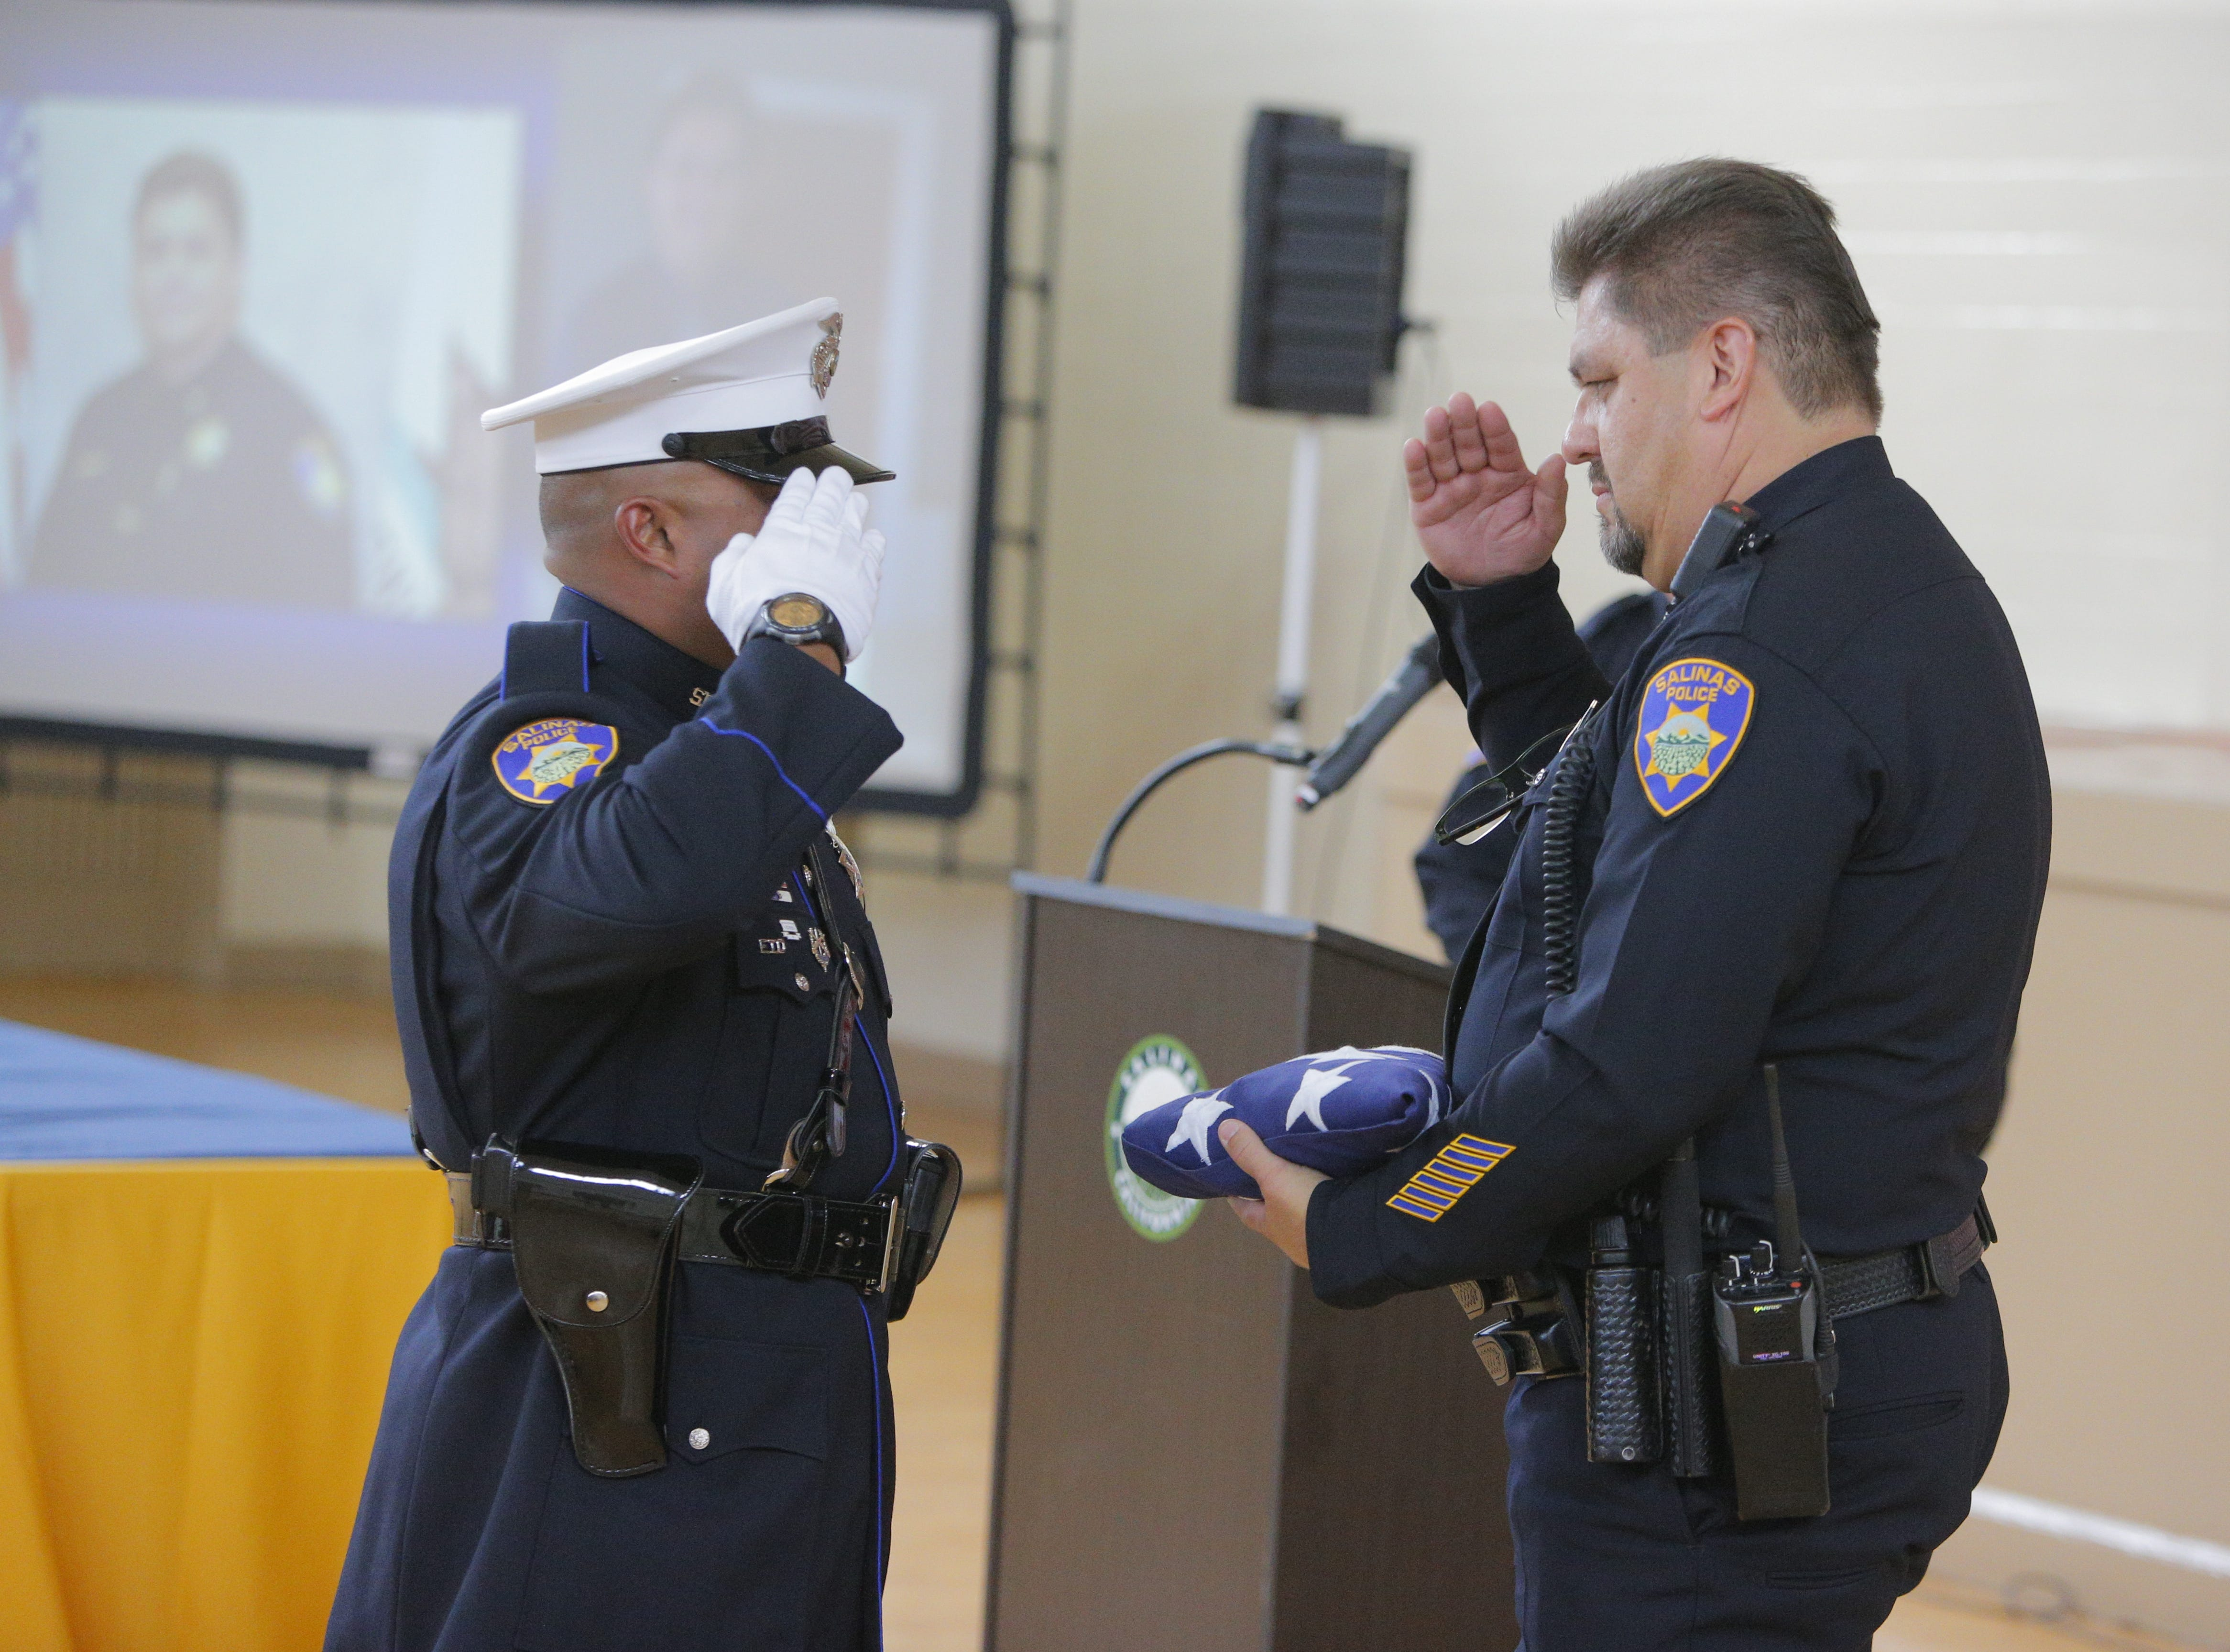 A Salinas police officer exchanges salutes with Cmdr. Henry Gomez after giving him a U.S. flag during his retirement  ceremony Tuesday.